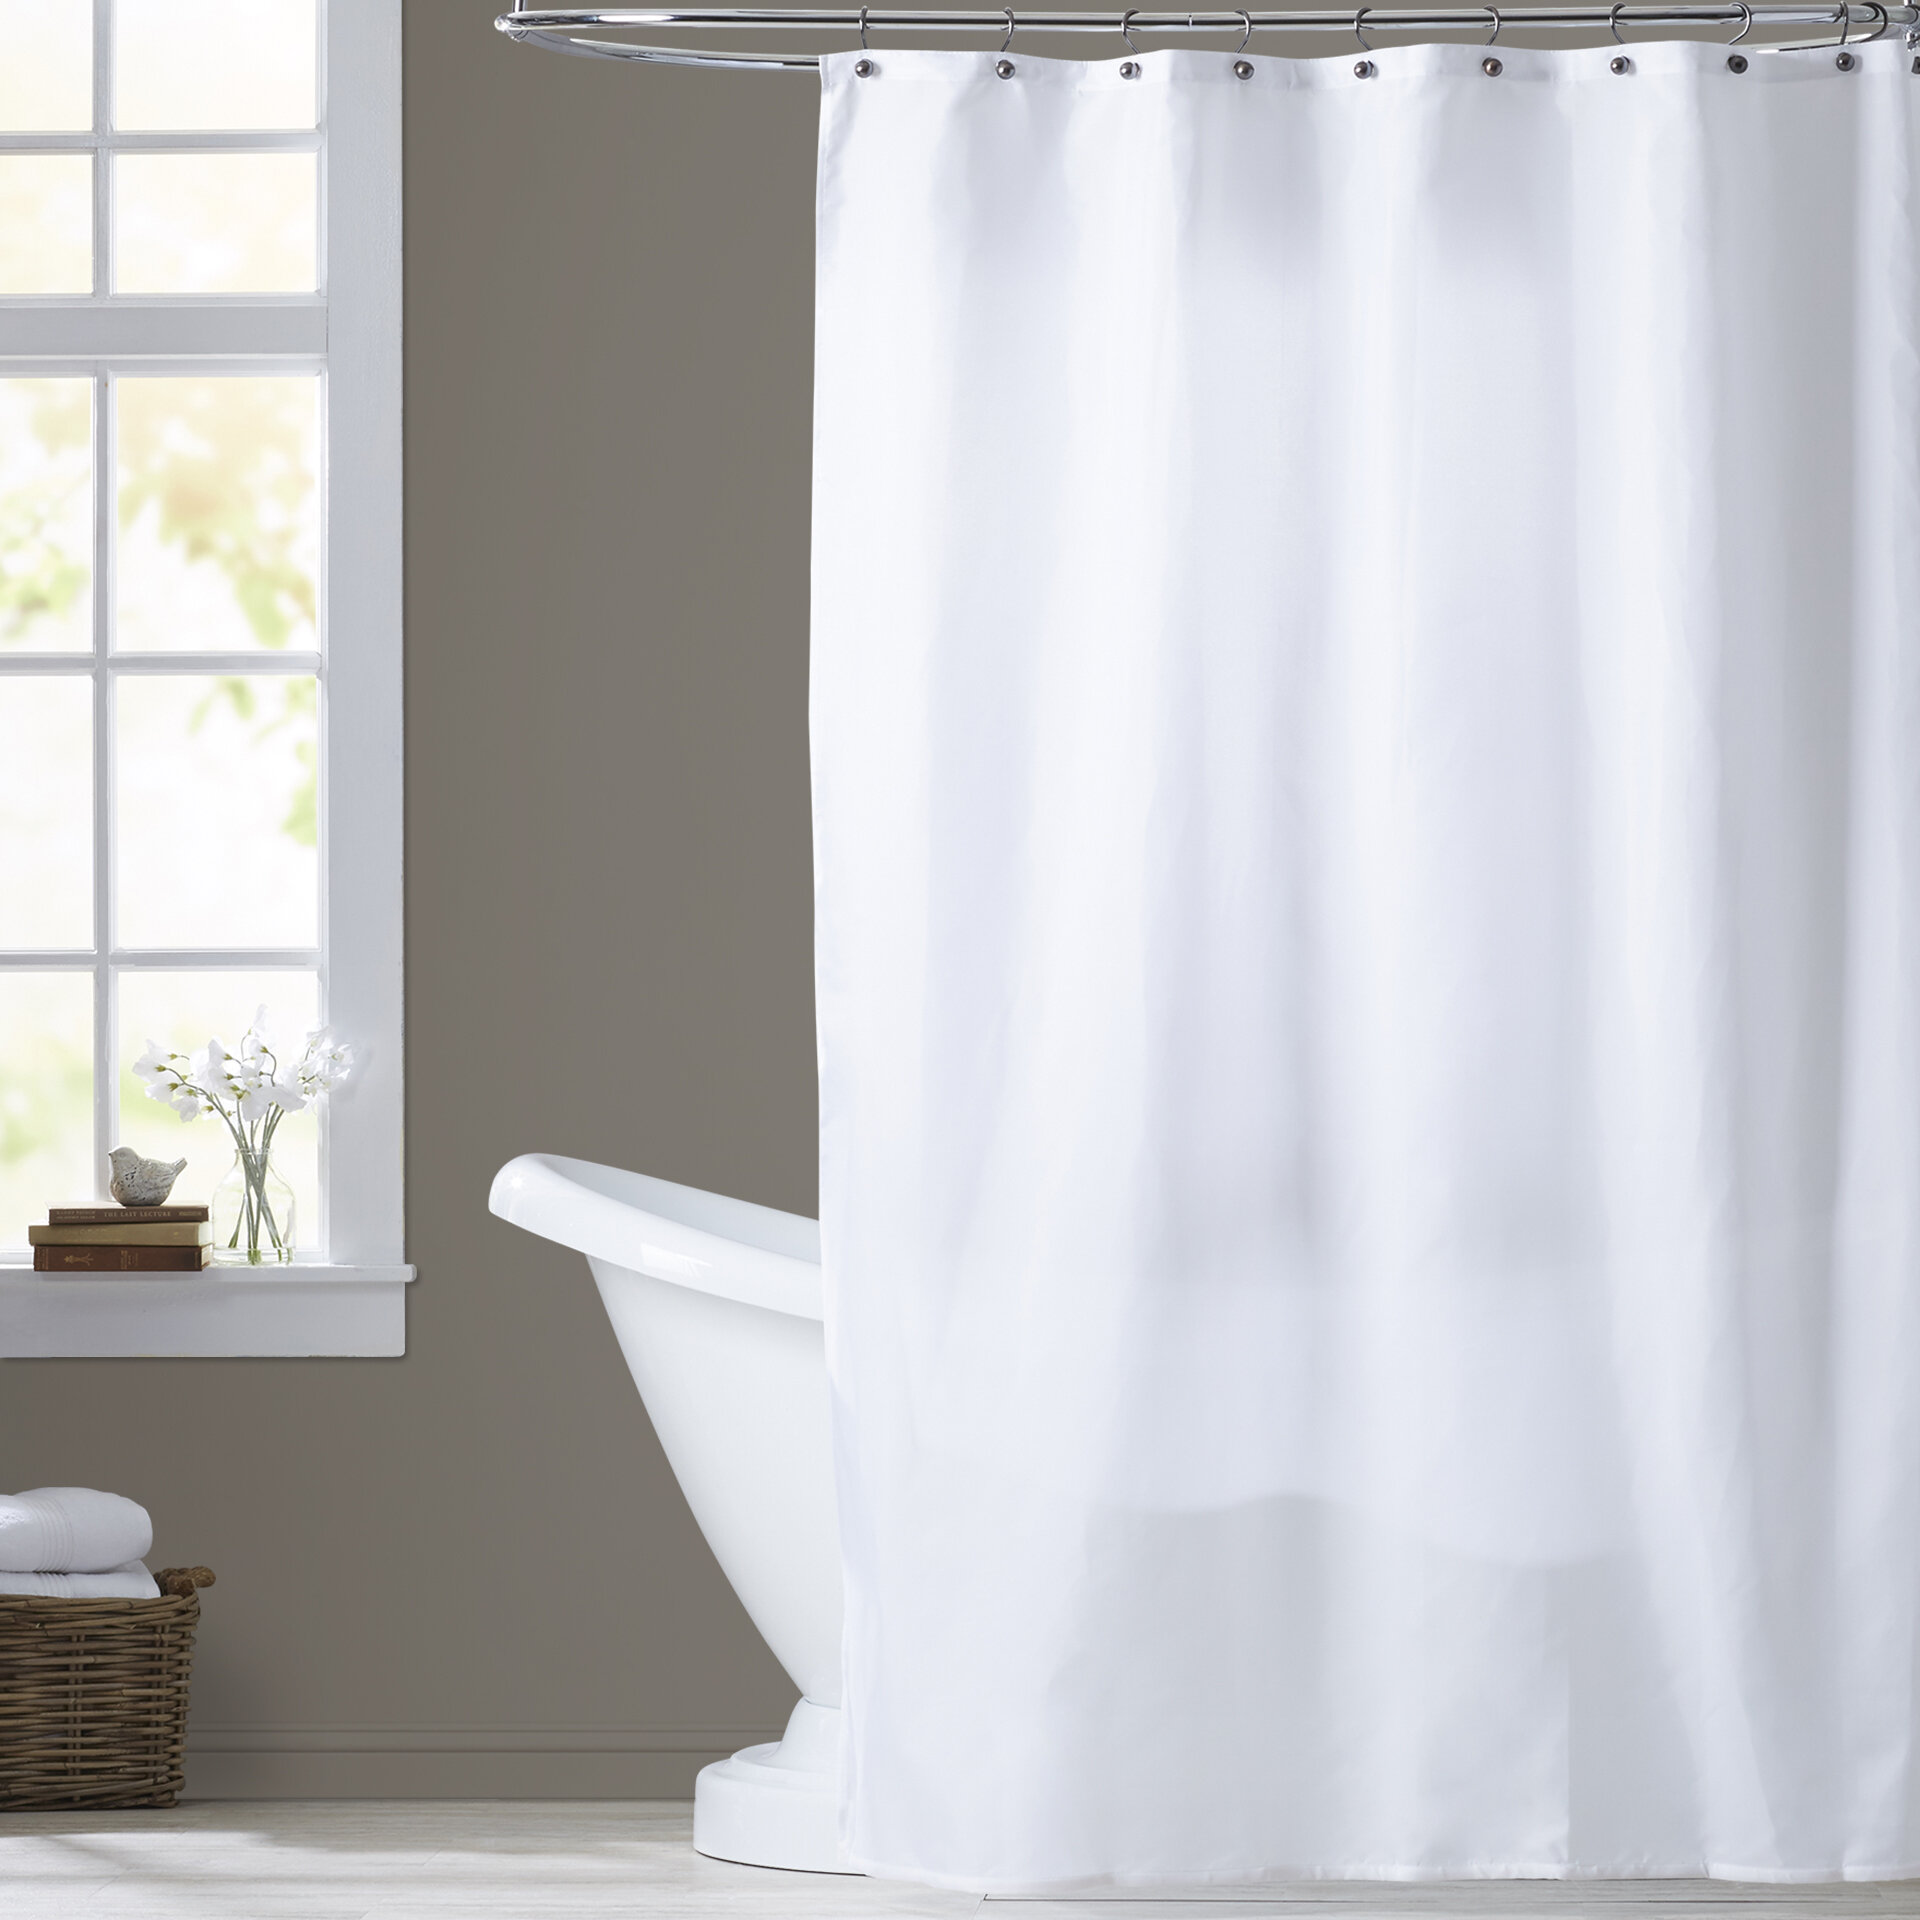 Shower Curtain Liners Odorless Magnetized Heavy Gauge Peva Extra Long Peva Shower Curtain Liner 84 Long White Reinforced With Metal Grommets Home Bwwisniewscy Pl